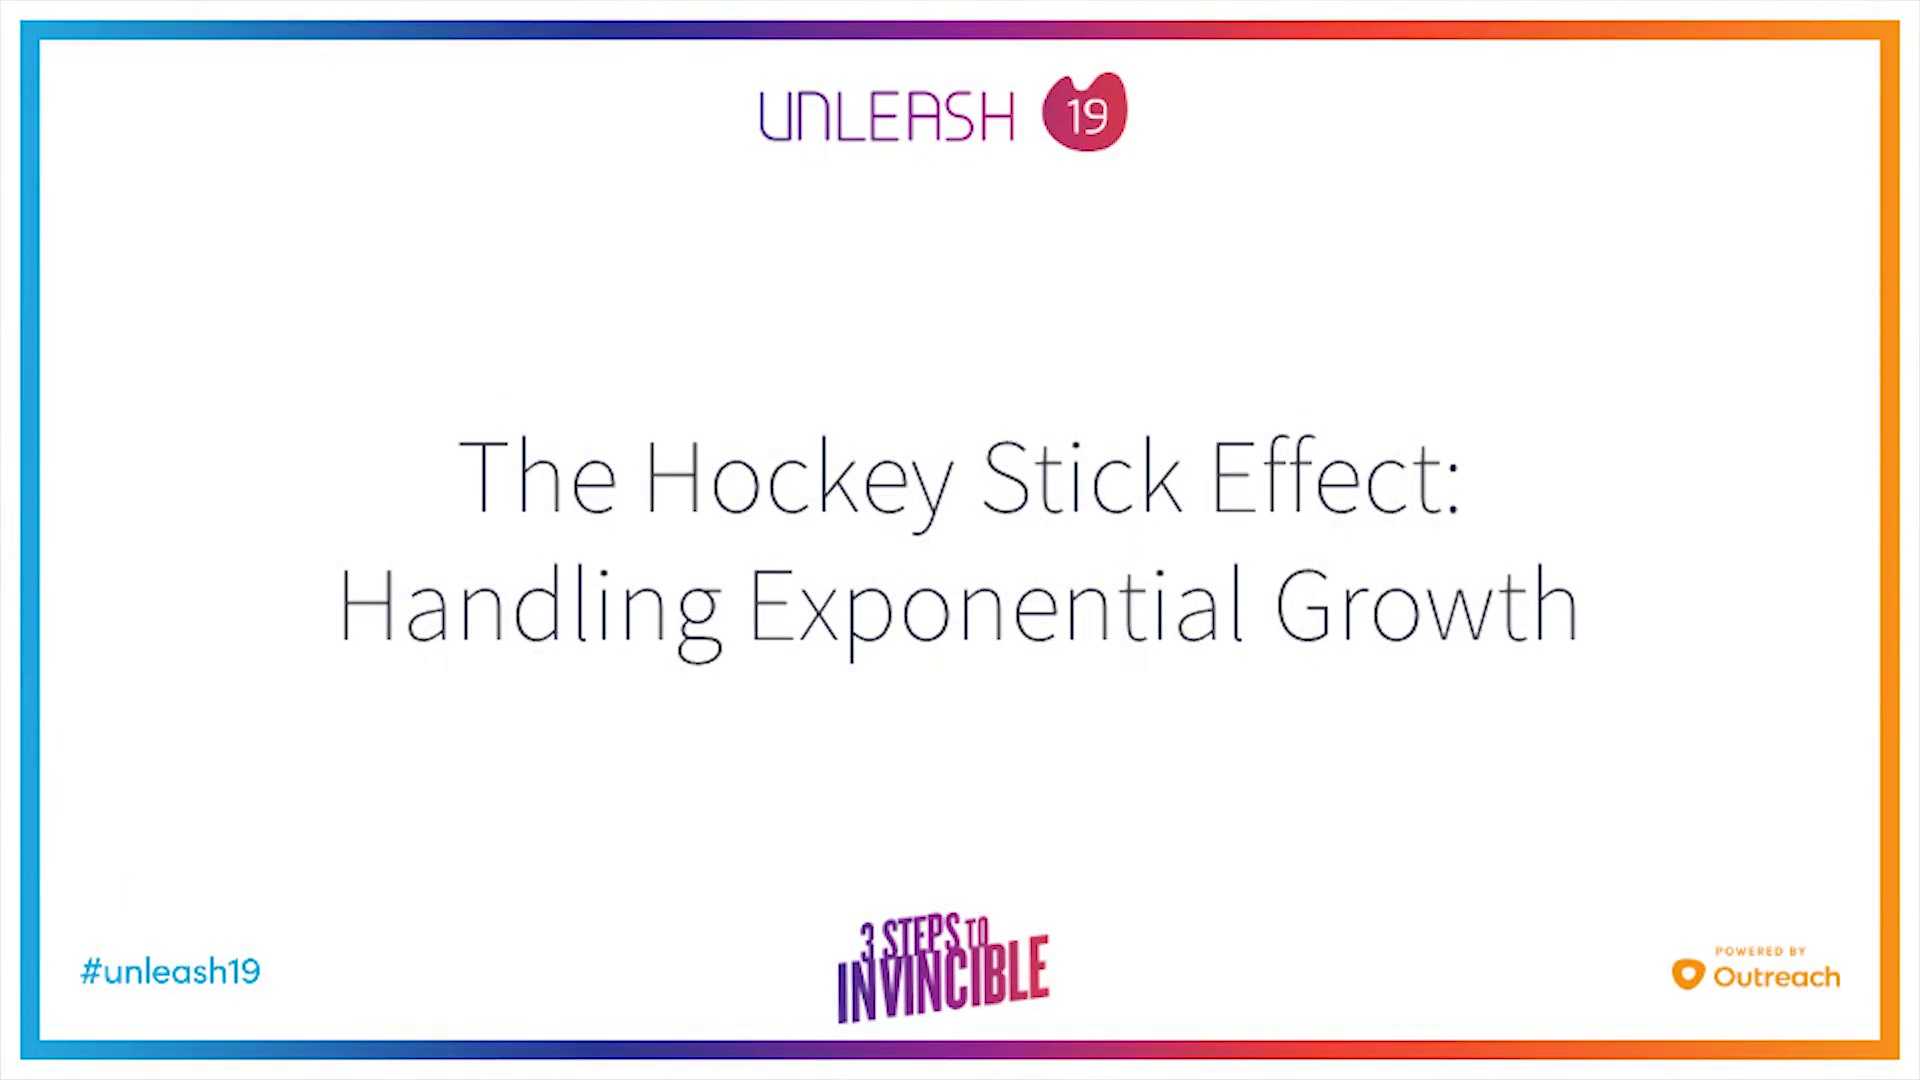 The Hockeystick Effect - Handling Exponential Growth